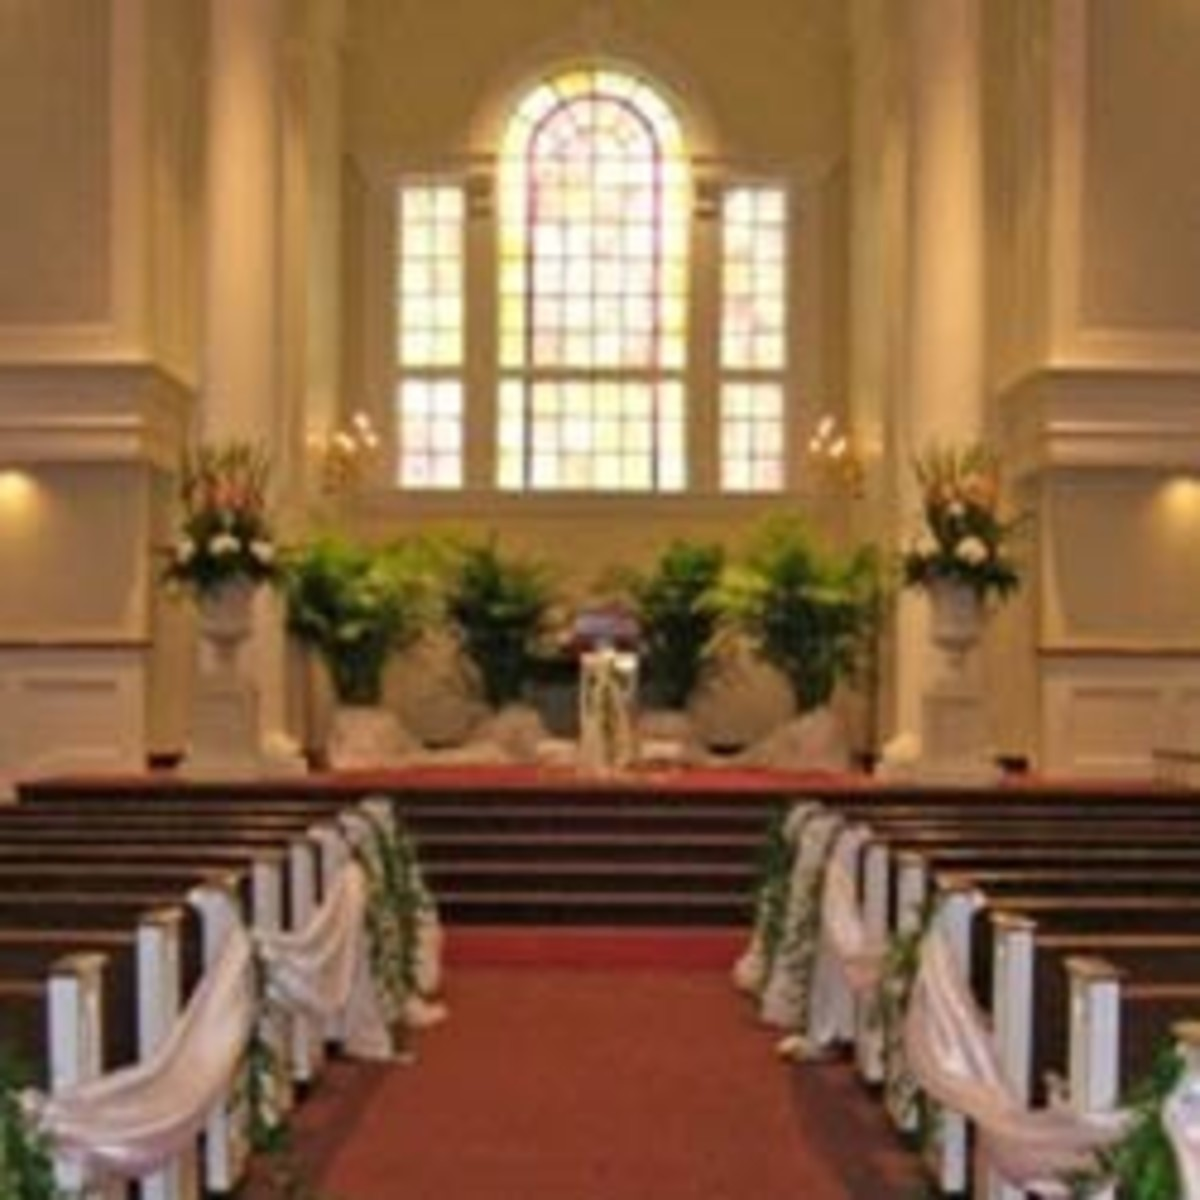 Church decorated for a wedding with pew swags, rented plants, and a couple of altar arrangements